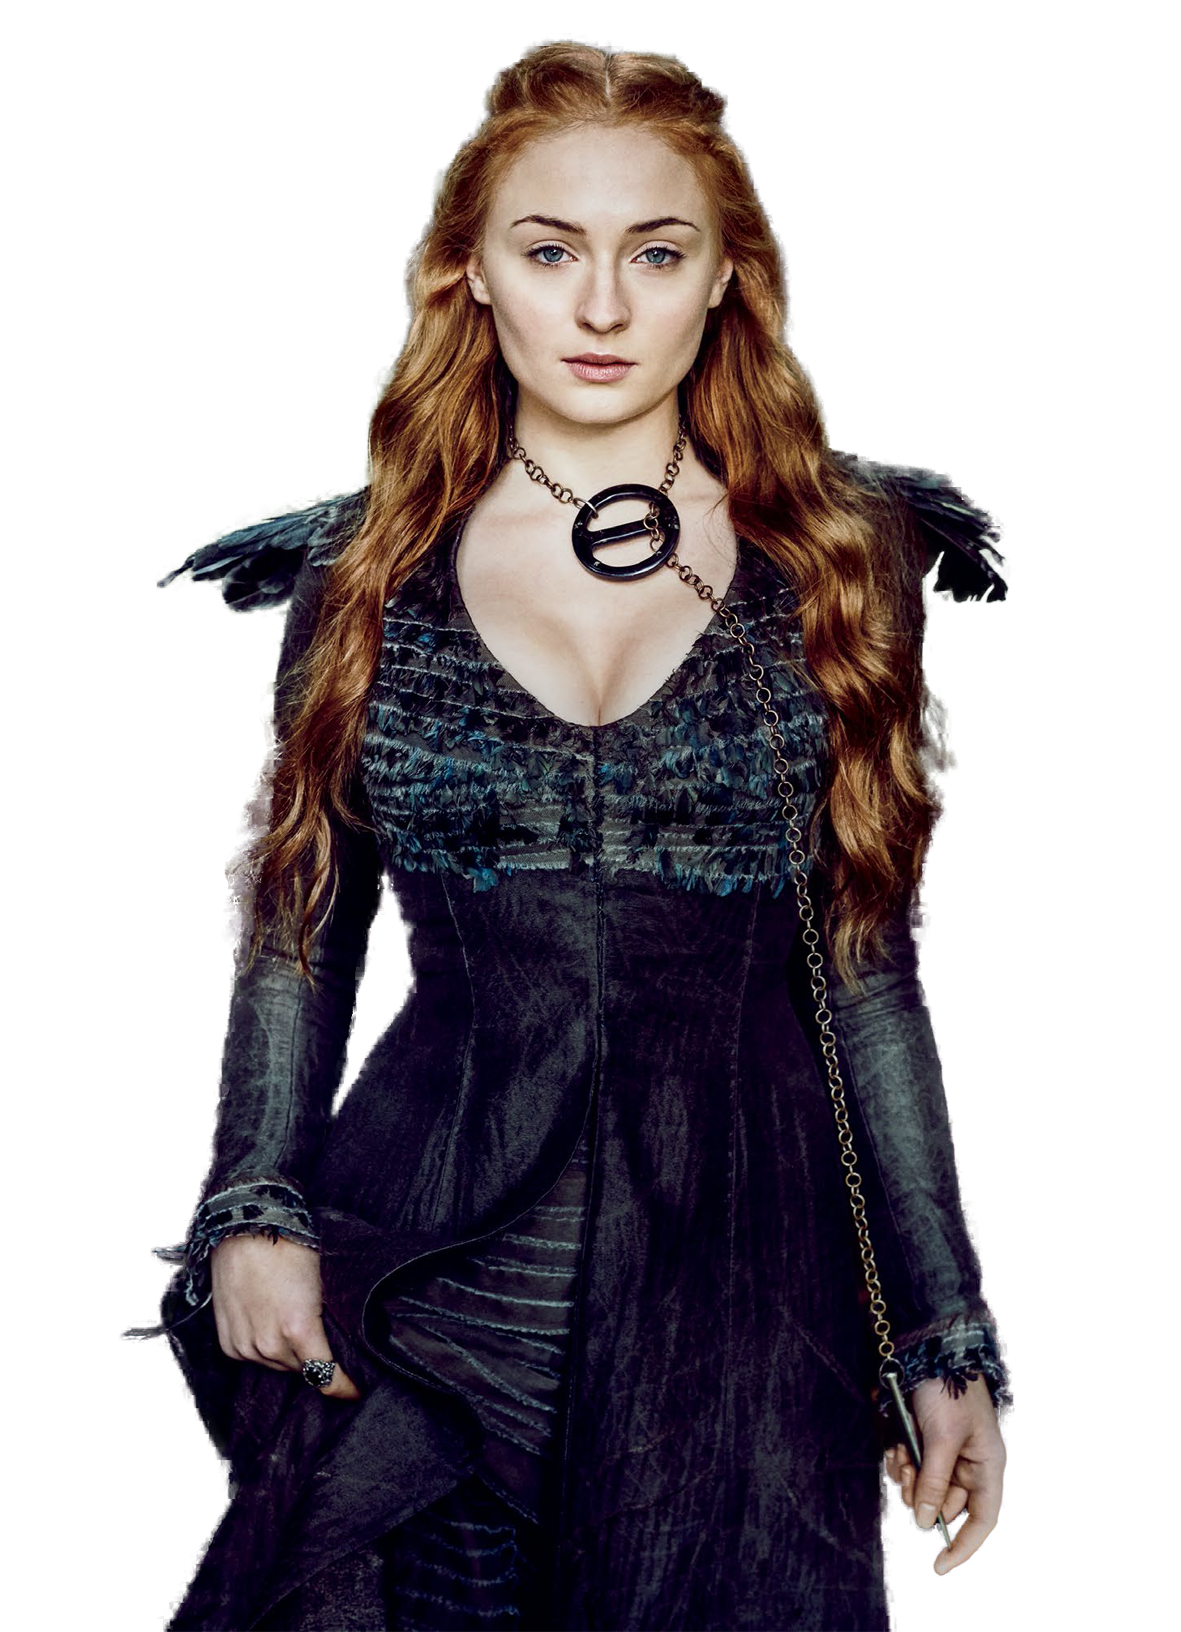 Pin By Mspirations On Png Tv Movies Sansa Stark Sophie Turner Game Of Thrones Sansa